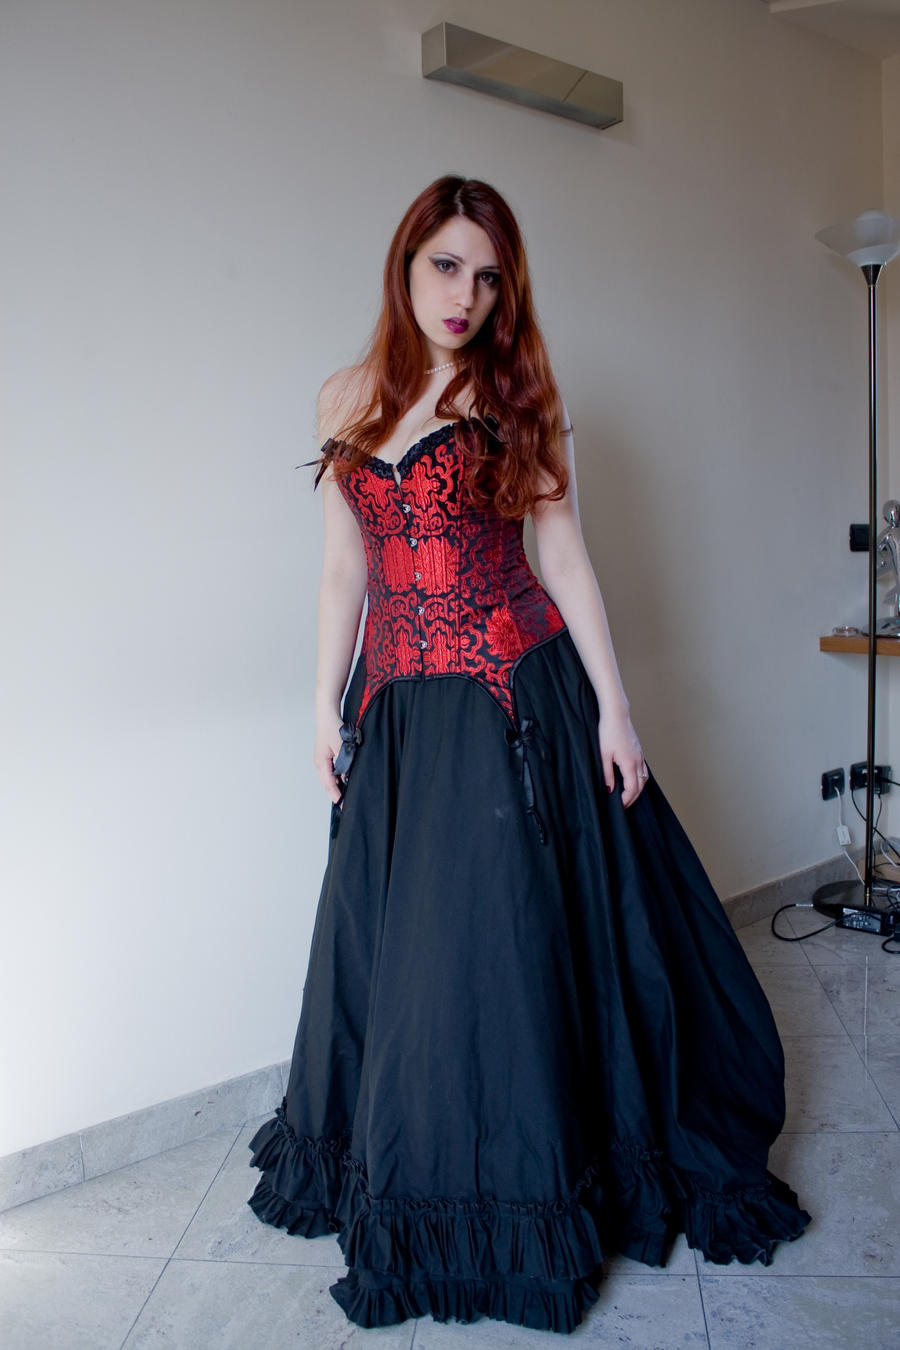 Gothic girl red corset by RahLuna